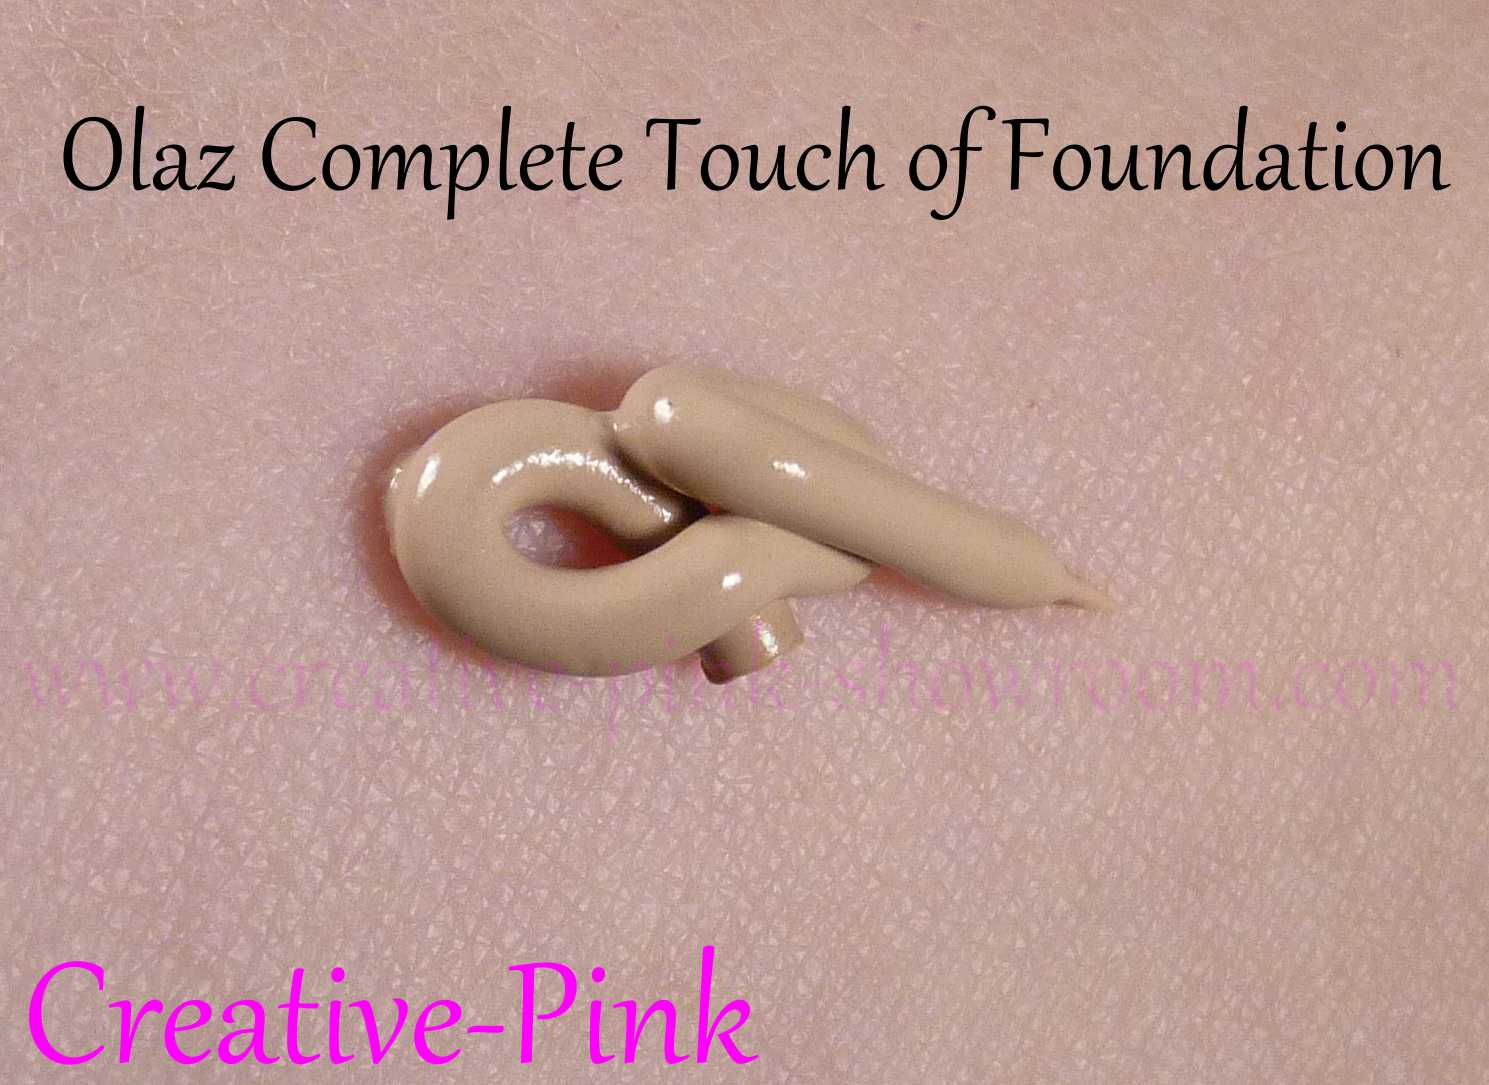 Showroom By Creative Pink Olaz Complete Touch Of Foundation